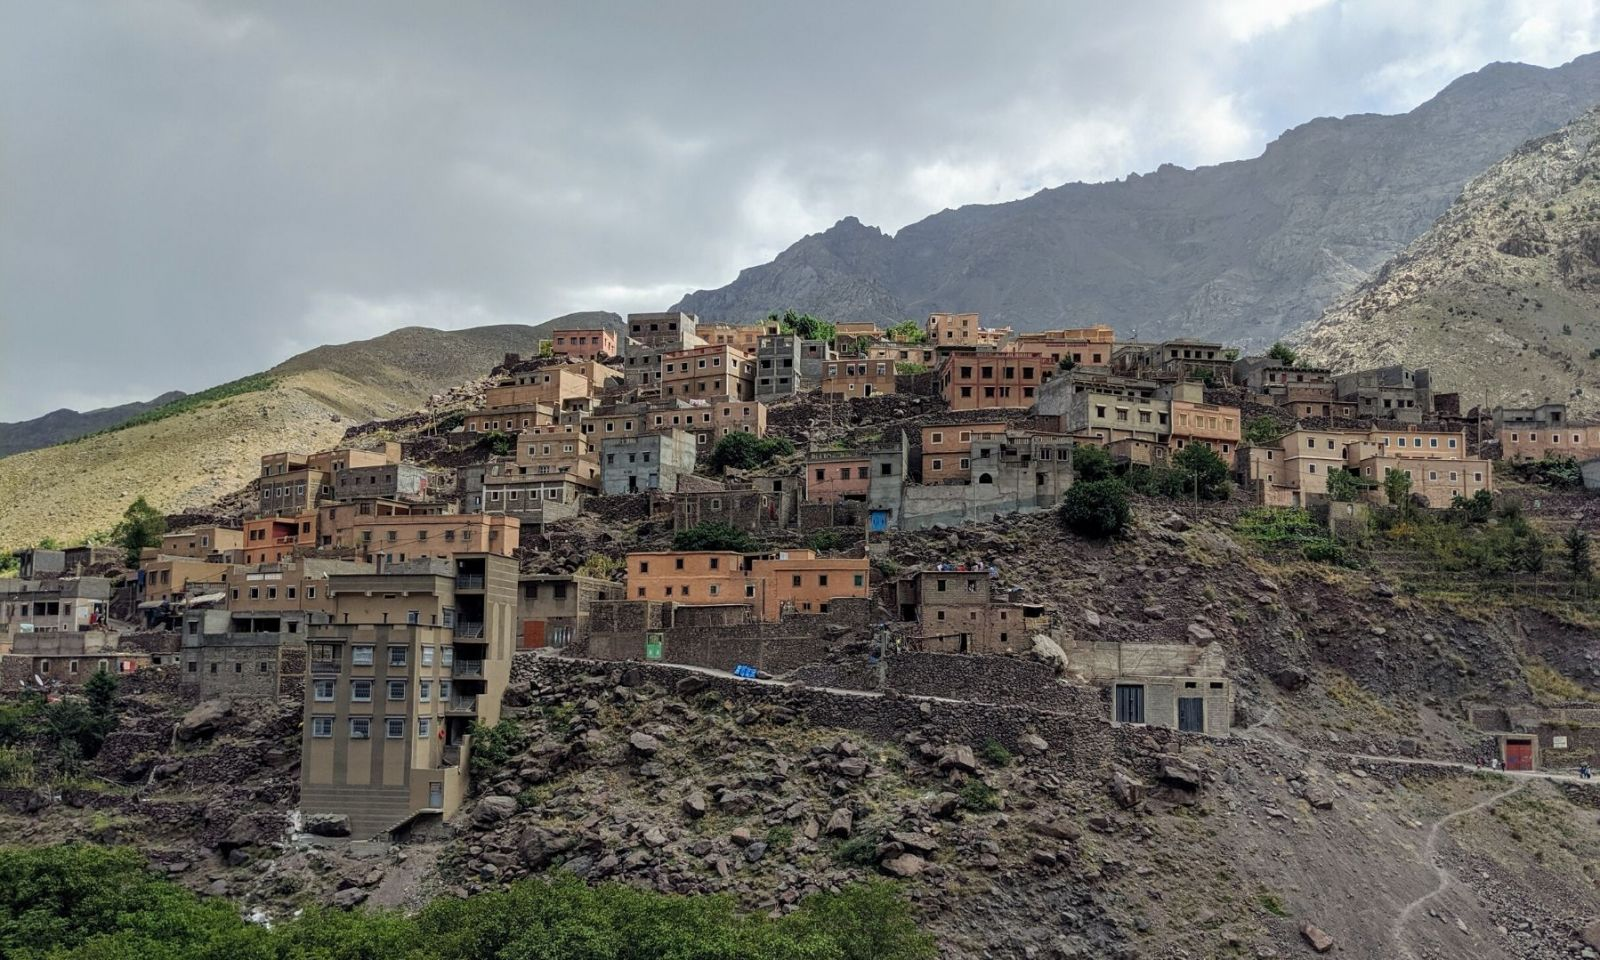 Mountain side village in the High Atlas mountains in Morocco.